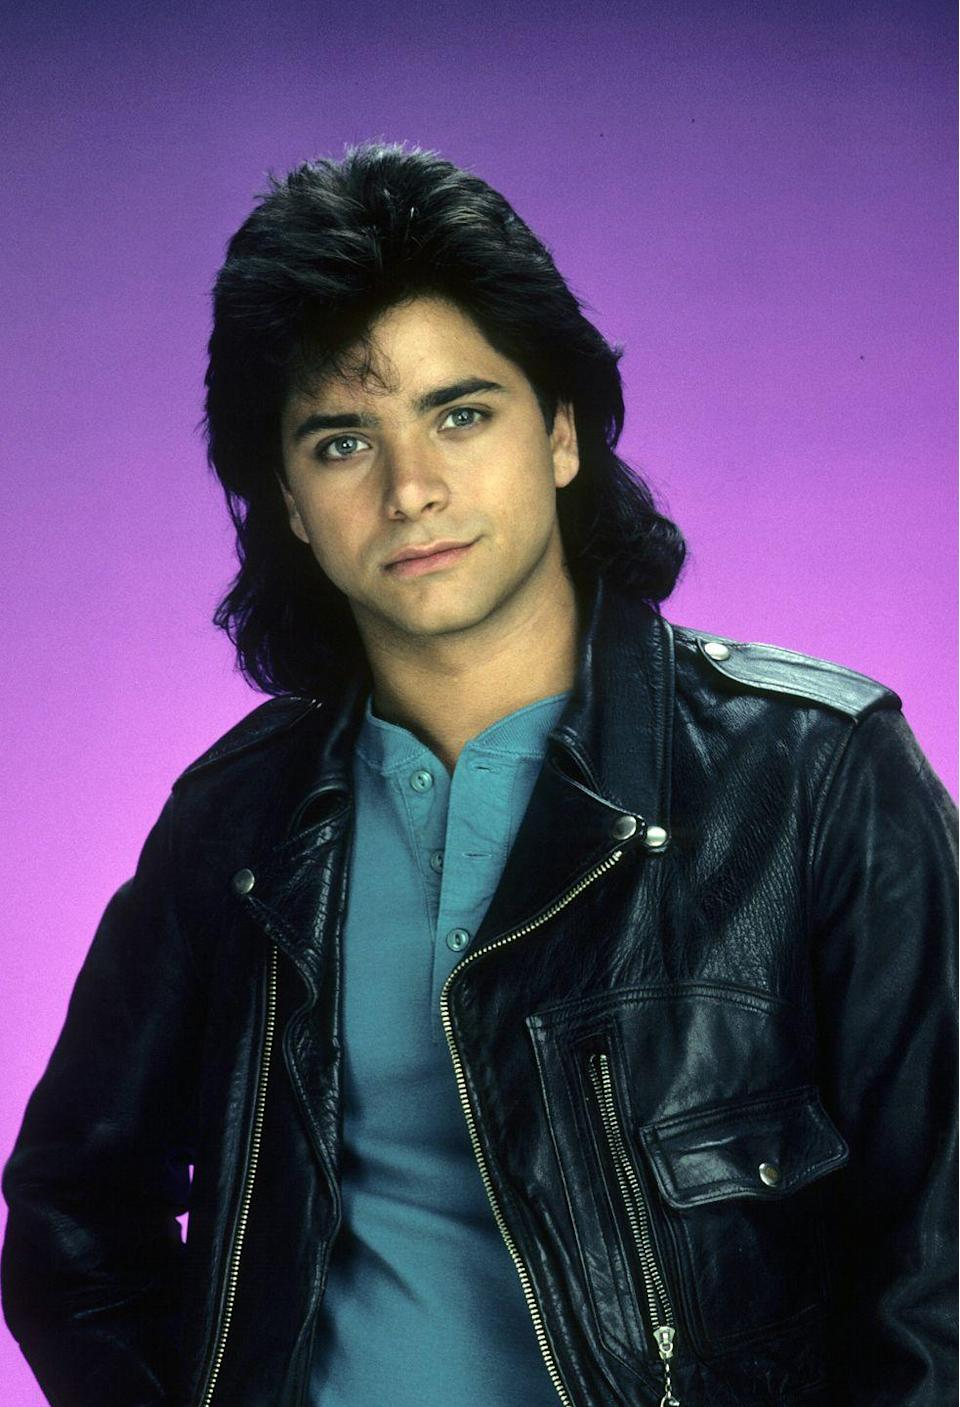 <p>Back in 1987, fans fell in love with John Stamos (and his luscious, yet terribly-styled hair) when he starred as Jesse Katsopolis on the hit TV series <em>Full House</em>. </p>